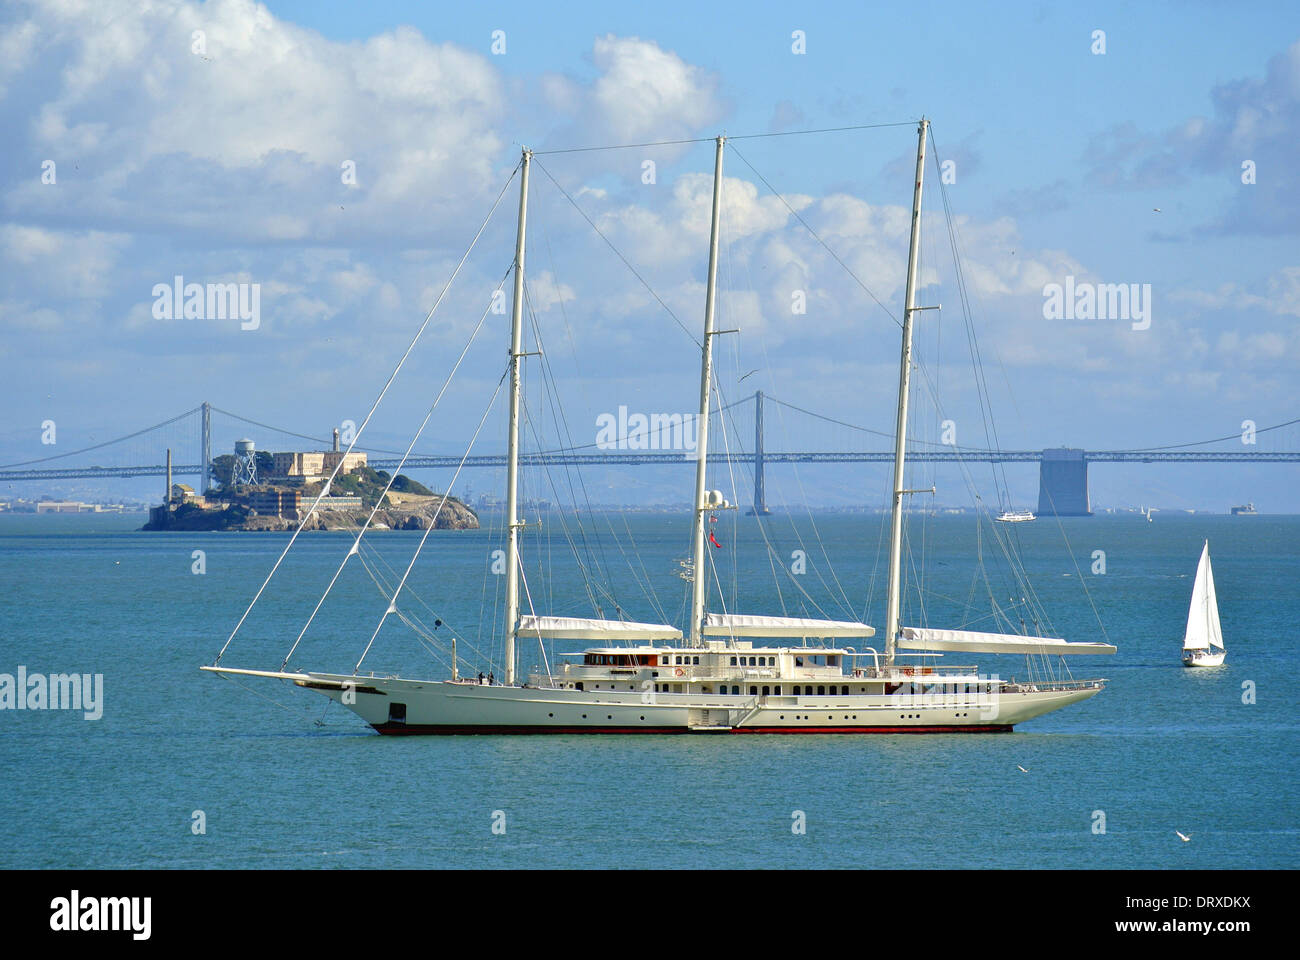 Athena the worlds fourth largest yacht built by Royal Huisman for  Netscape Internet entrepreneur James H. Clark valued at 95 million US dollars anchors off Sausalito in San Francisco Bay. - Stock Image